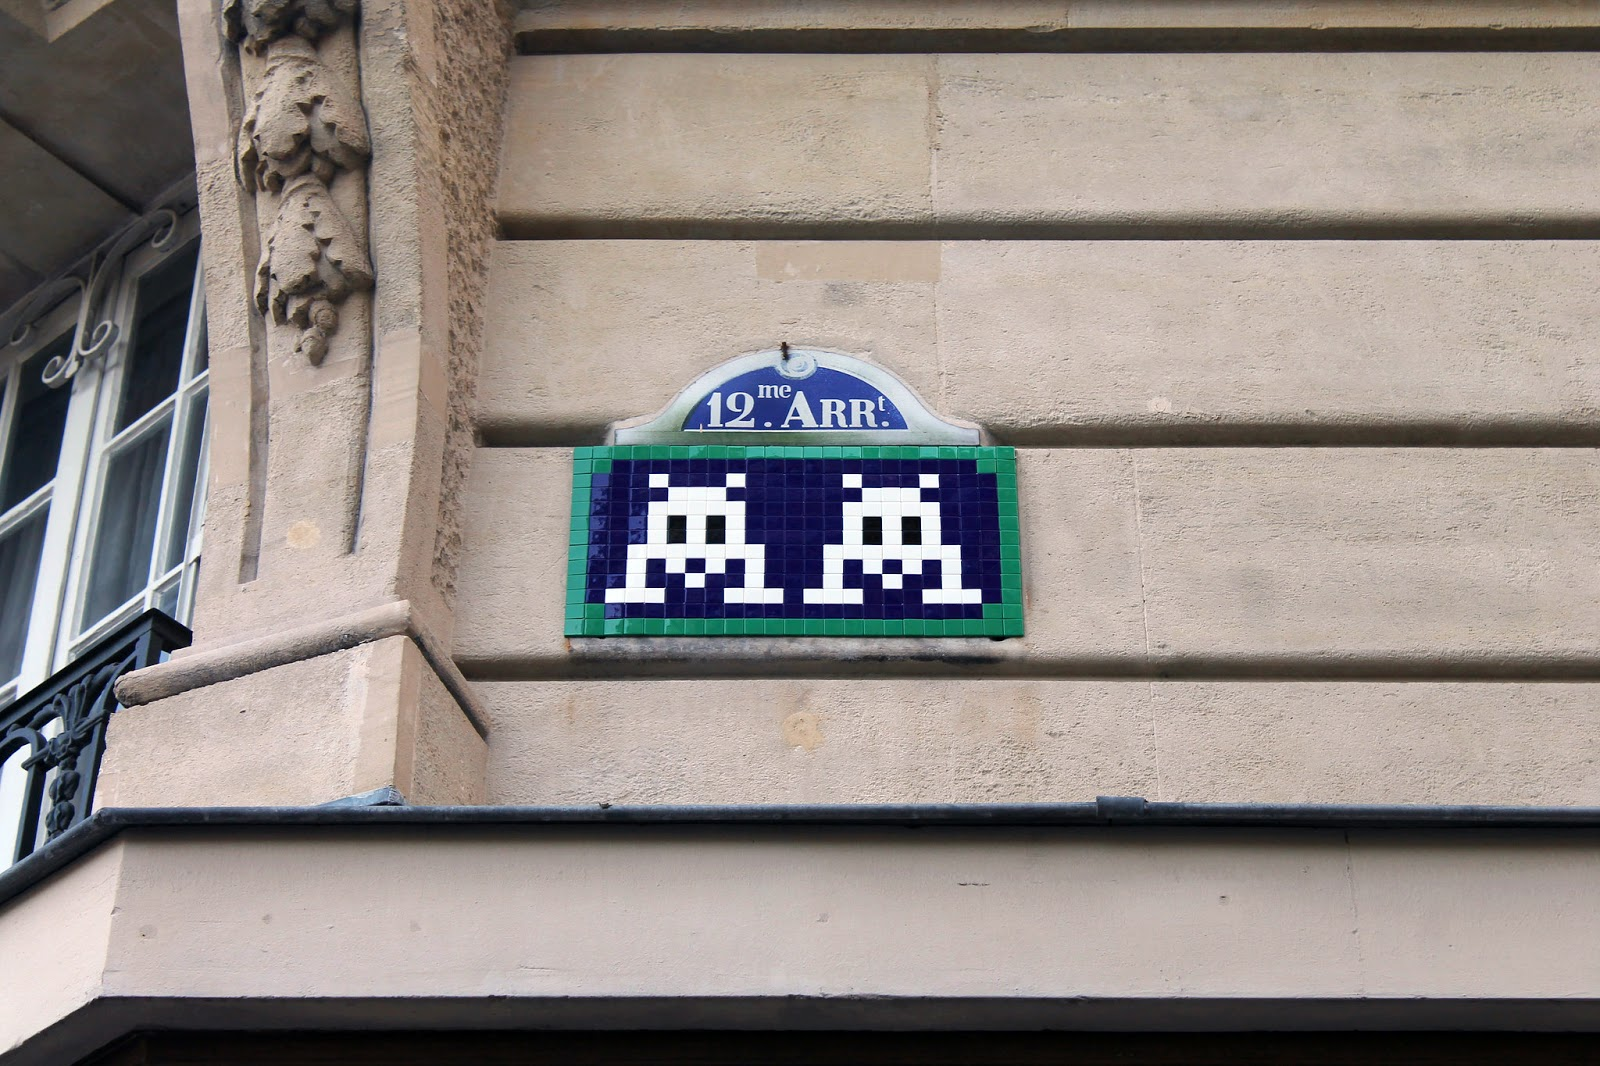 invader-a-new-invasion-in-paris-france-06